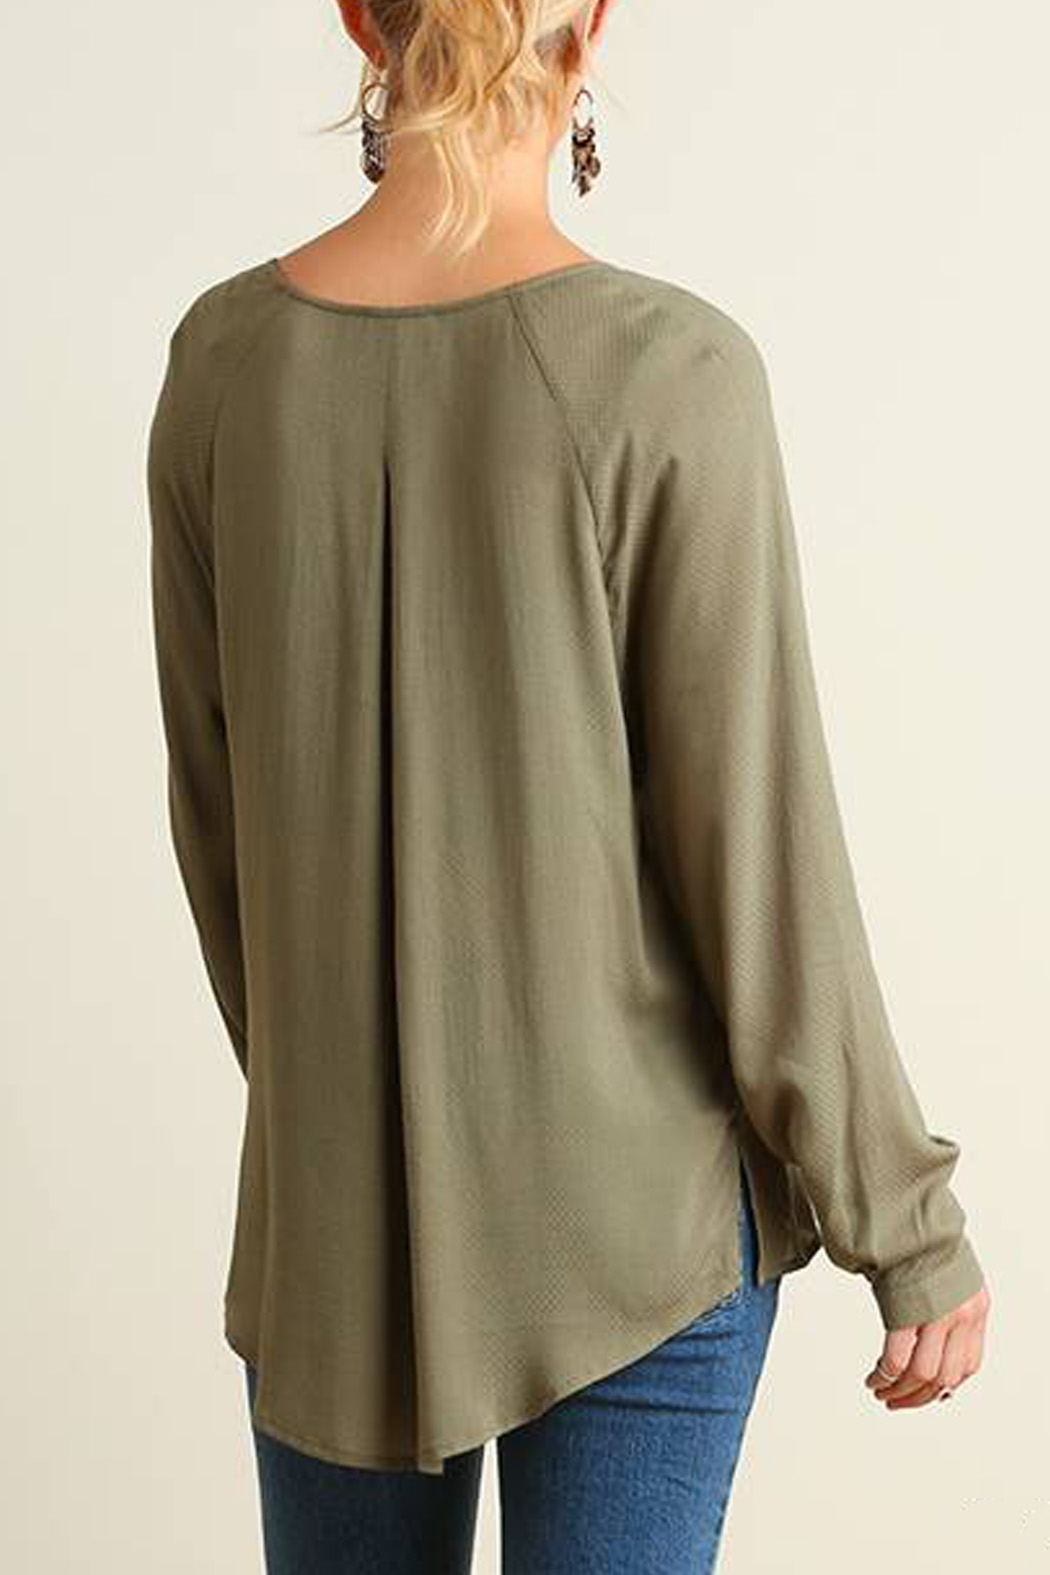 Umgee USA Crossed High Low Blouse - Back Cropped Image